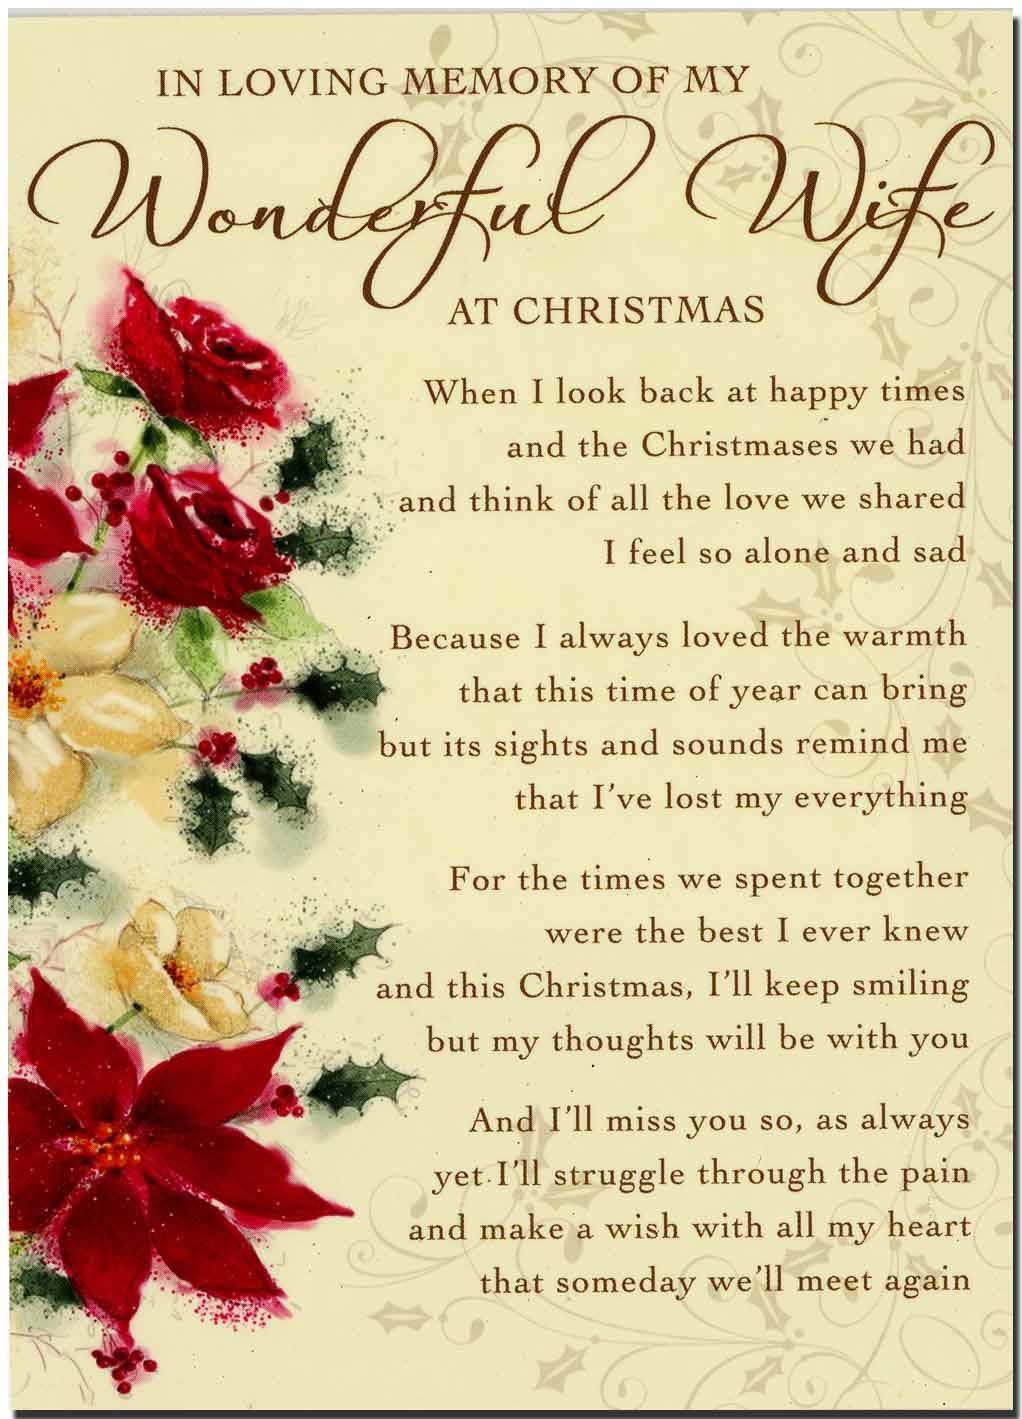 Grave card in loving memory of my wonderful wife at christmas grave card in loving memory of my wonderful wife at christmas free card holder c104 amazon kitchen home kristyandbryce Choice Image